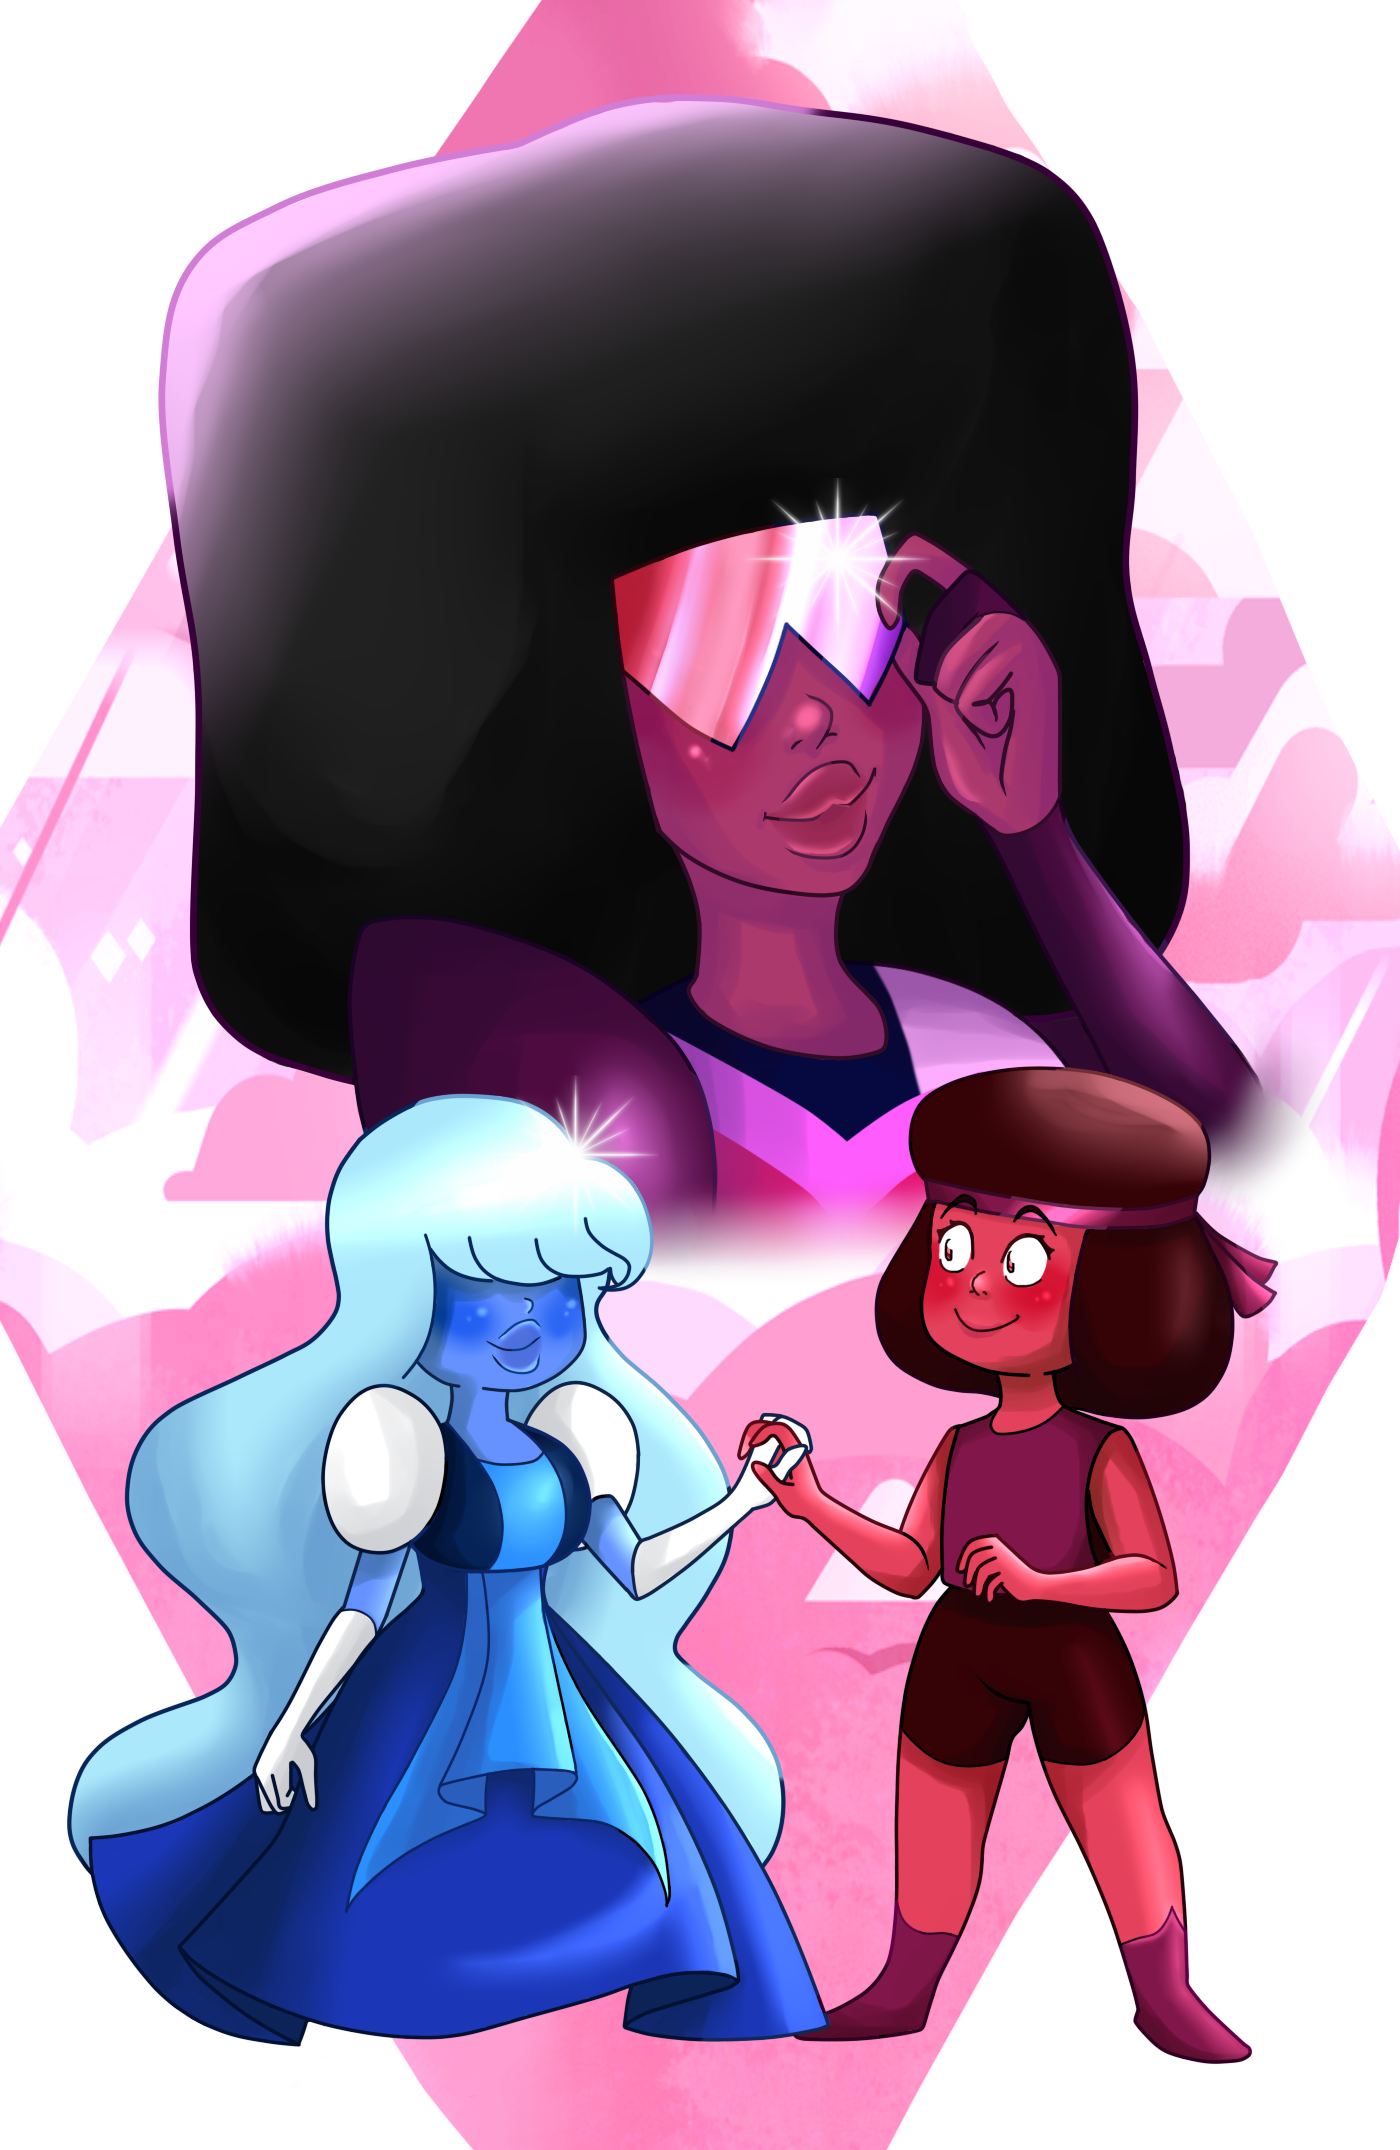 Ruby Sapphire with Garnet